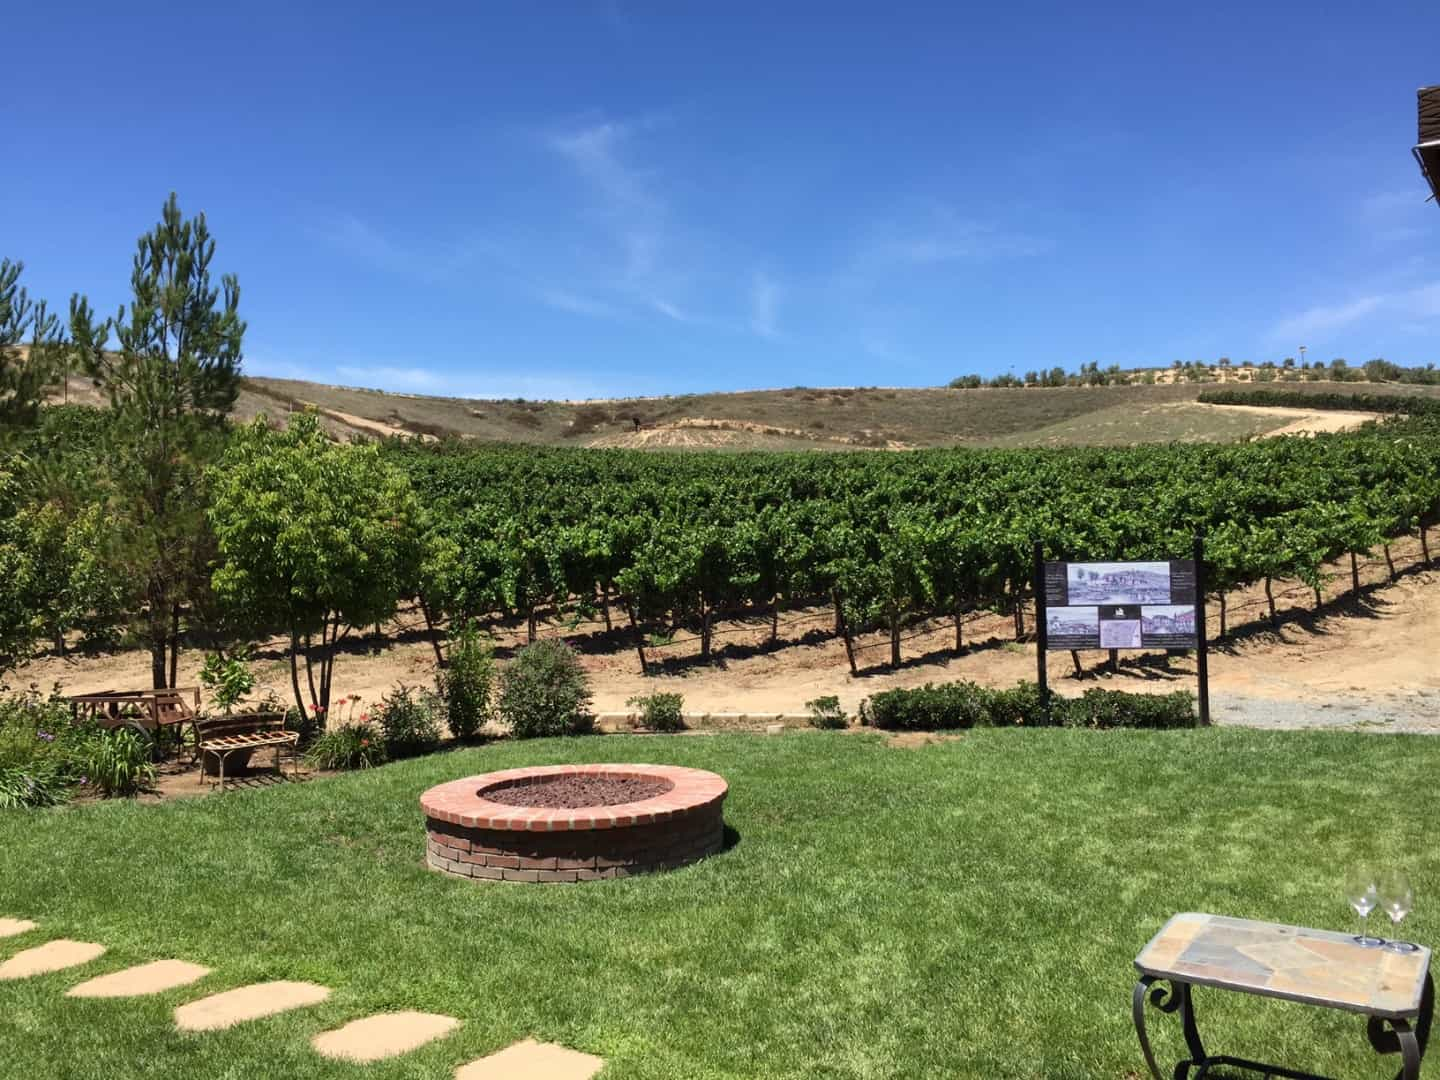 Europa Village Vineyards in Temecula